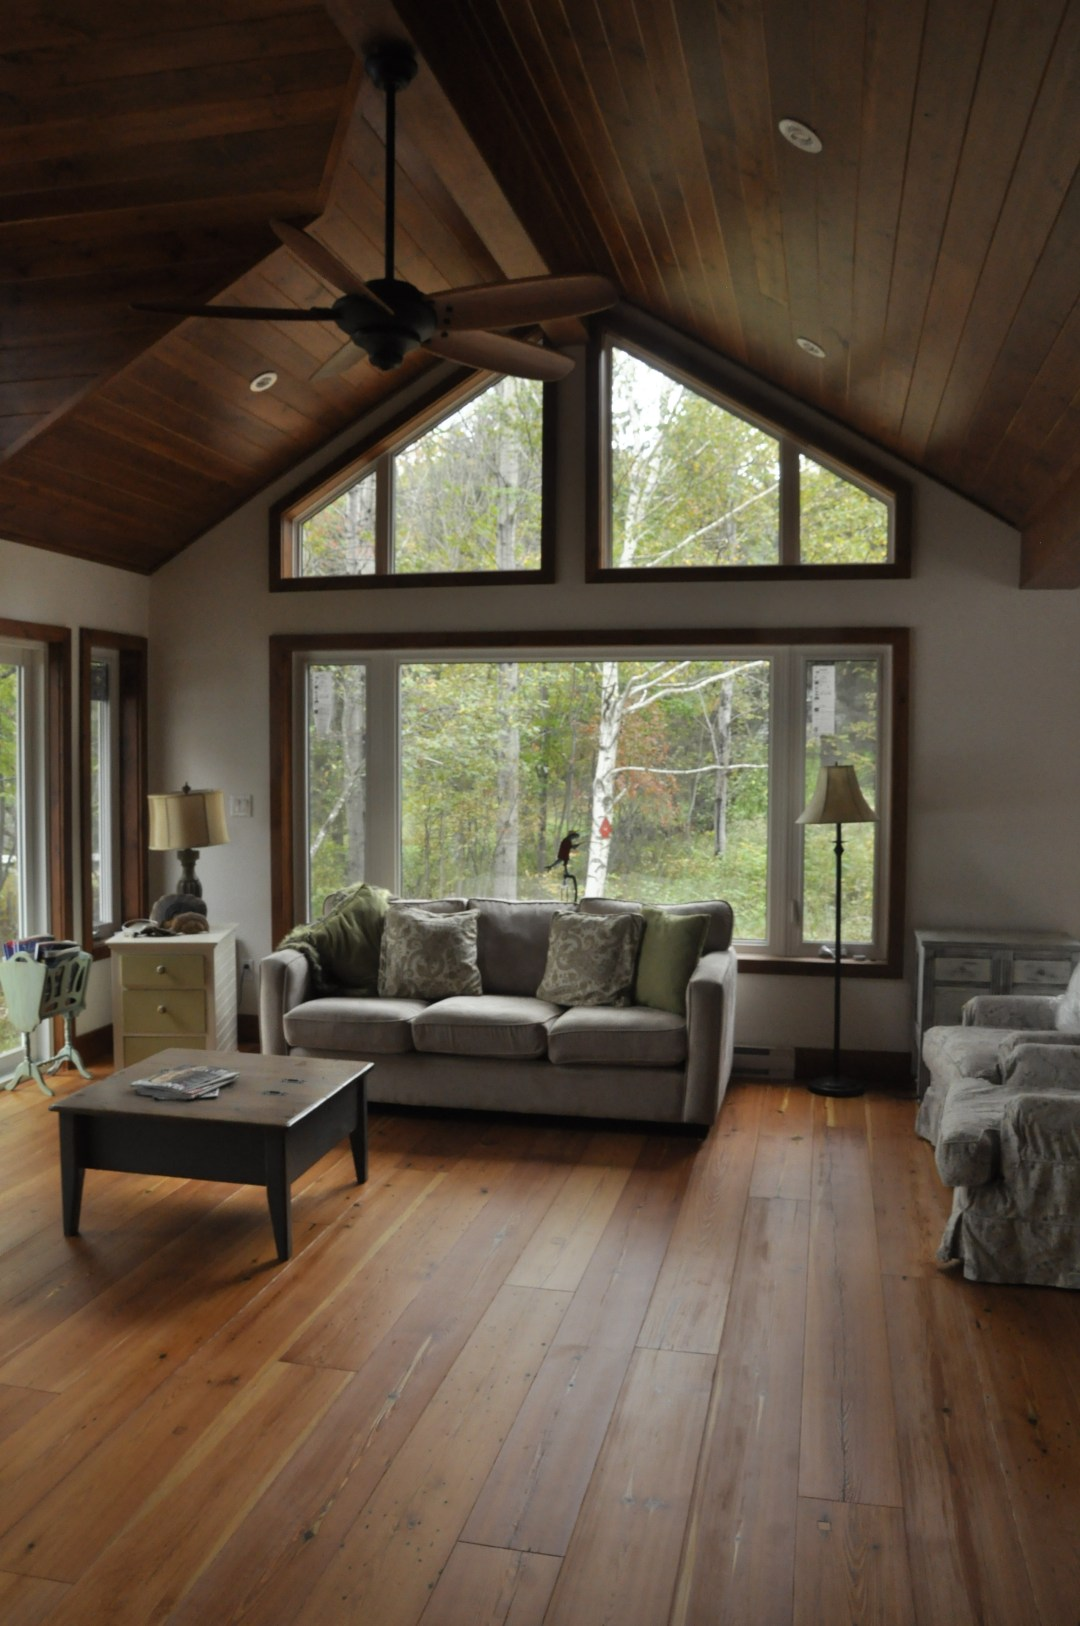 Lake of Bays Addtion - After Construction Interior of Living Room